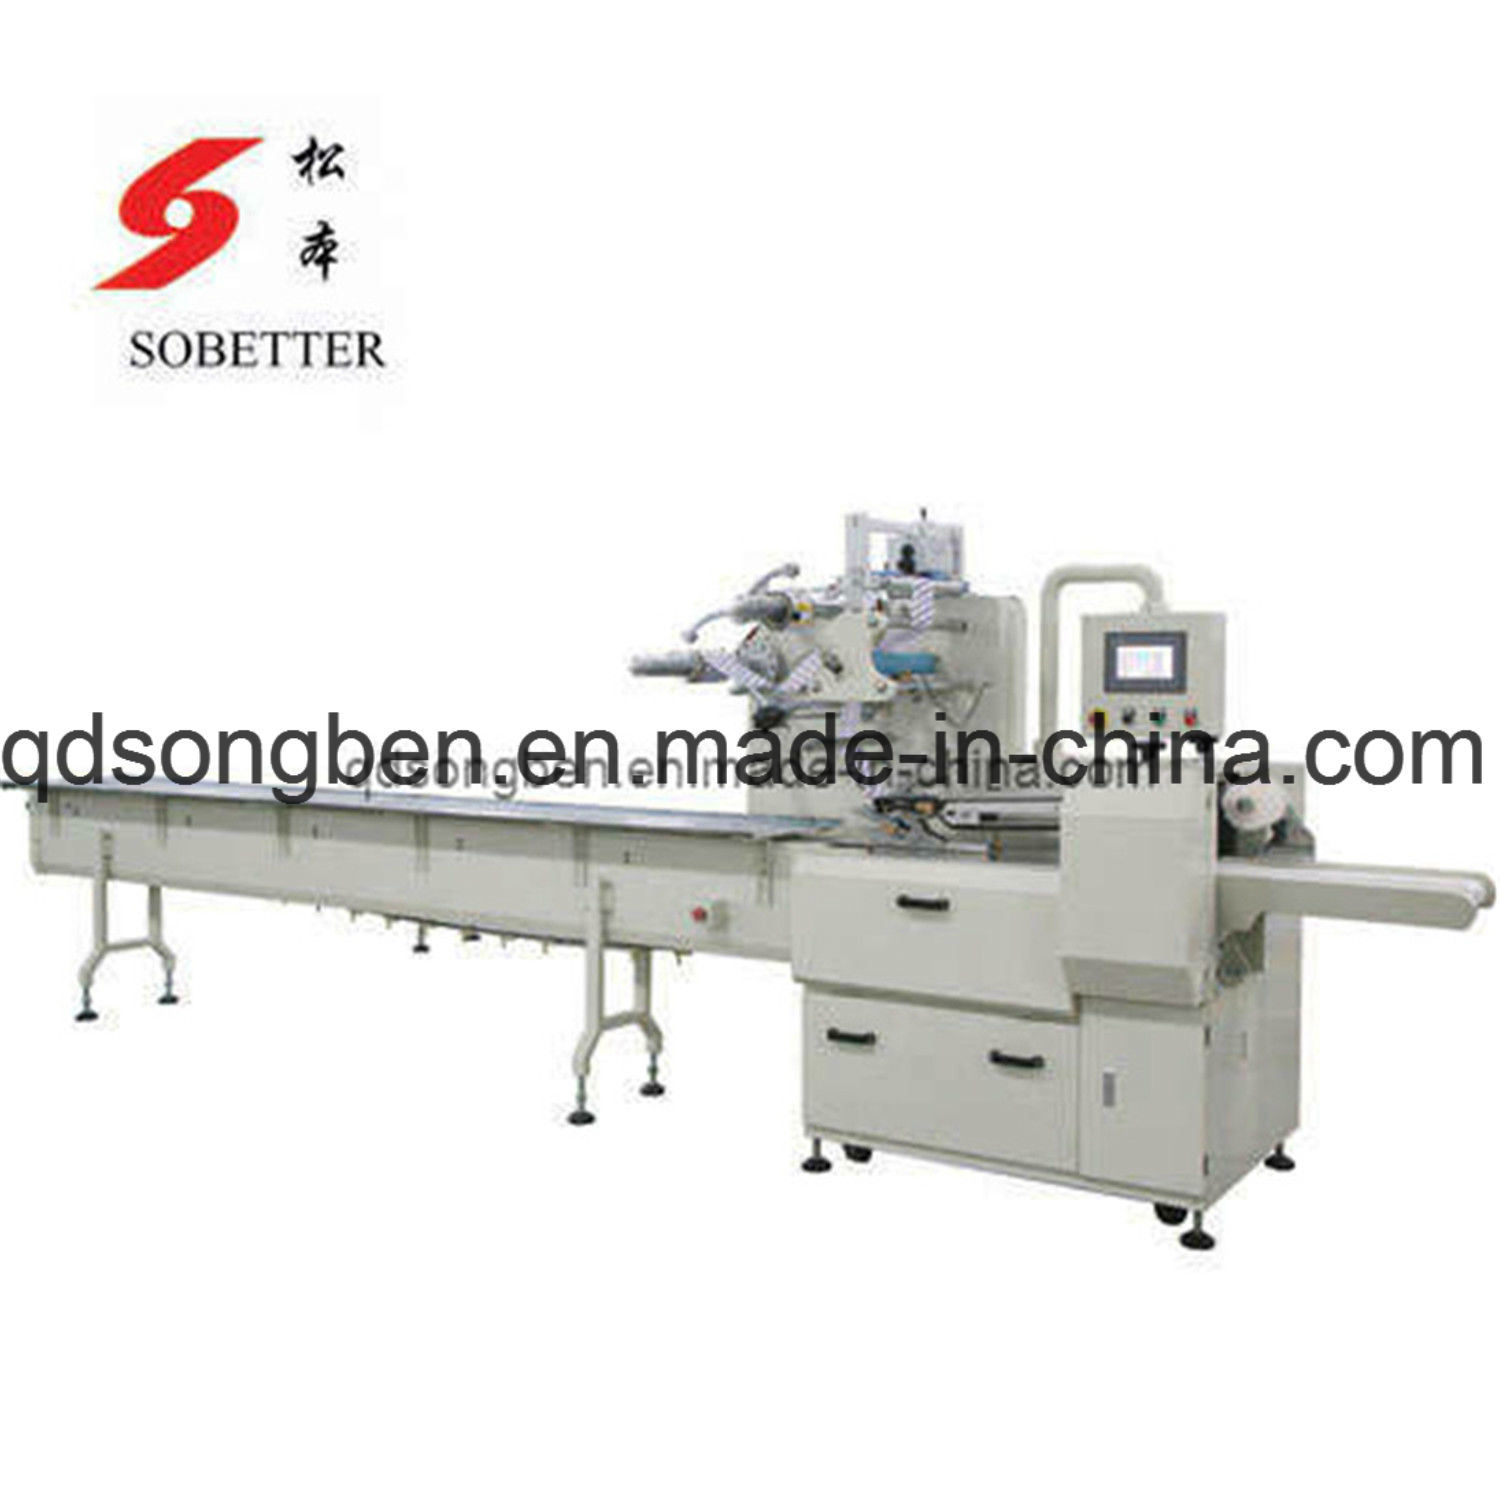 Chocolate Auto Feeding Packaging Machine